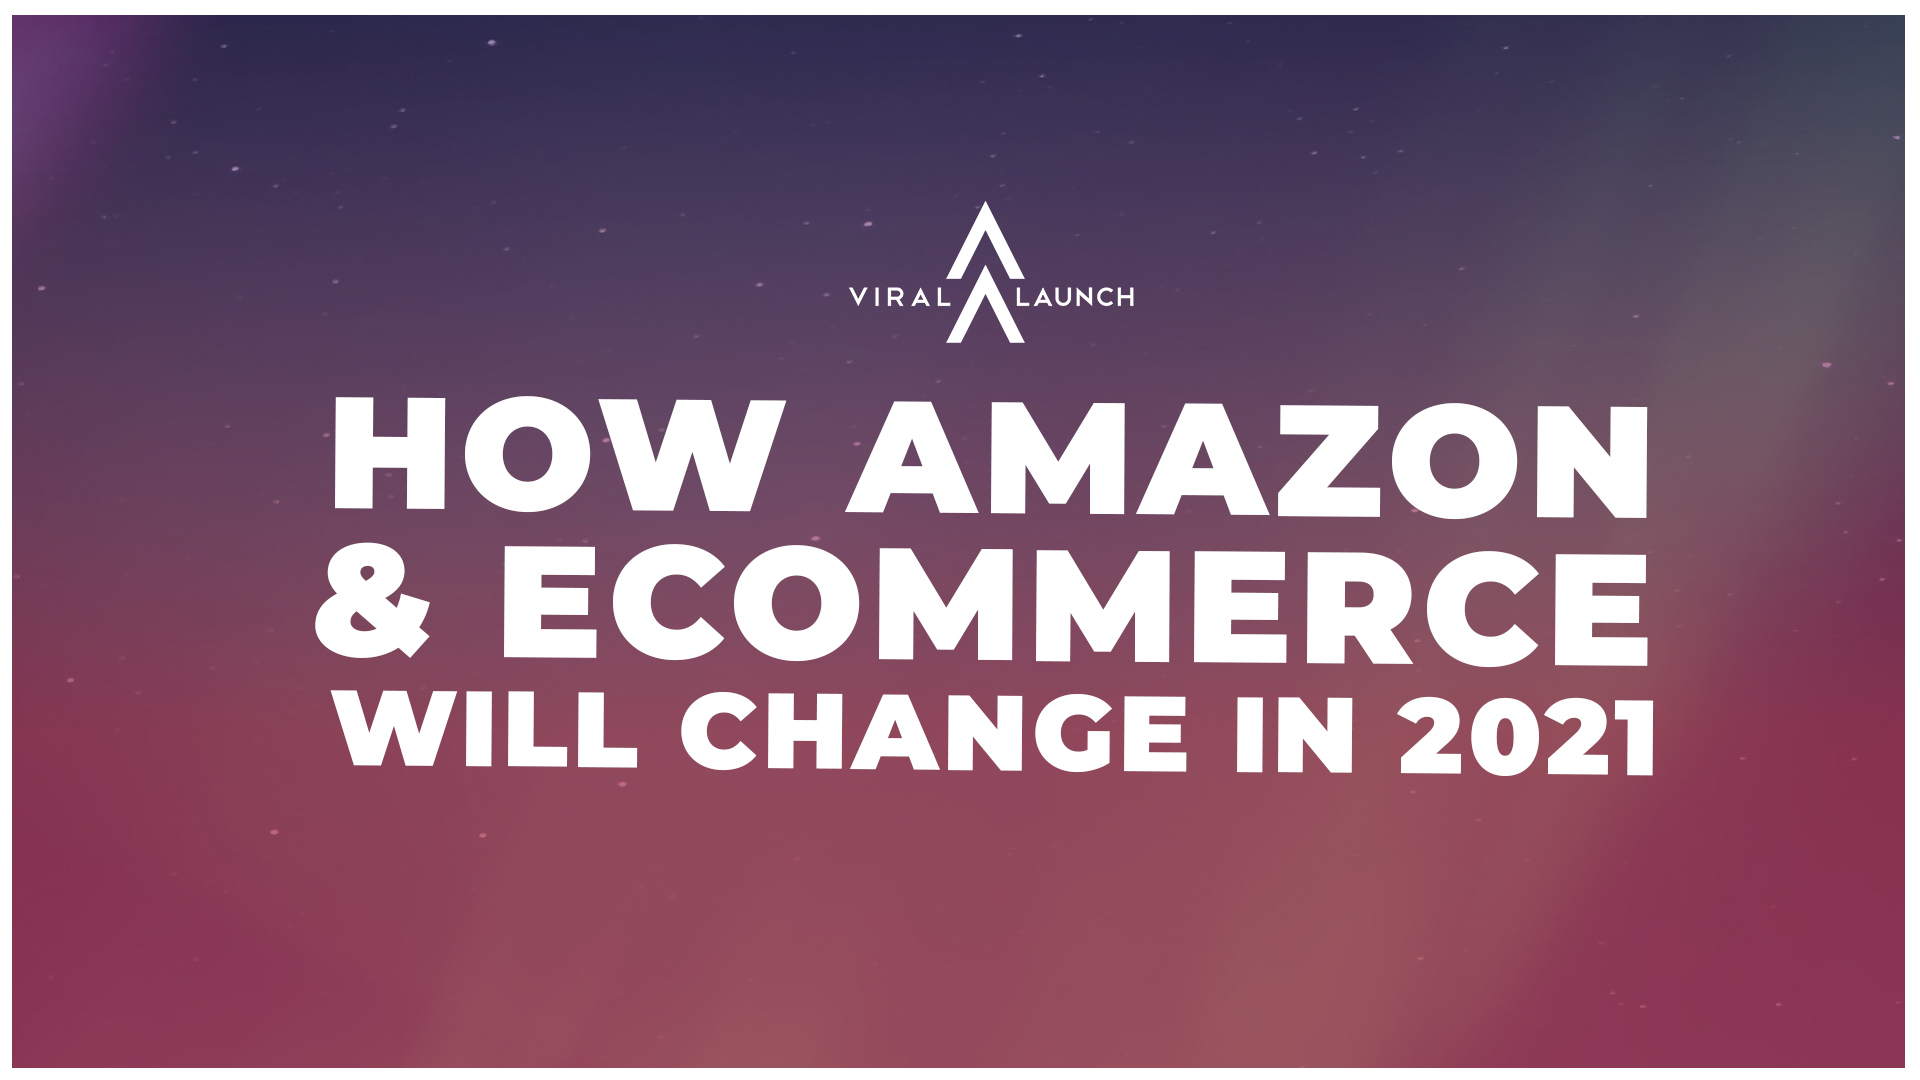 Amazon 2021 Expert Predictions: How Amazon & Ecommerce Will Change